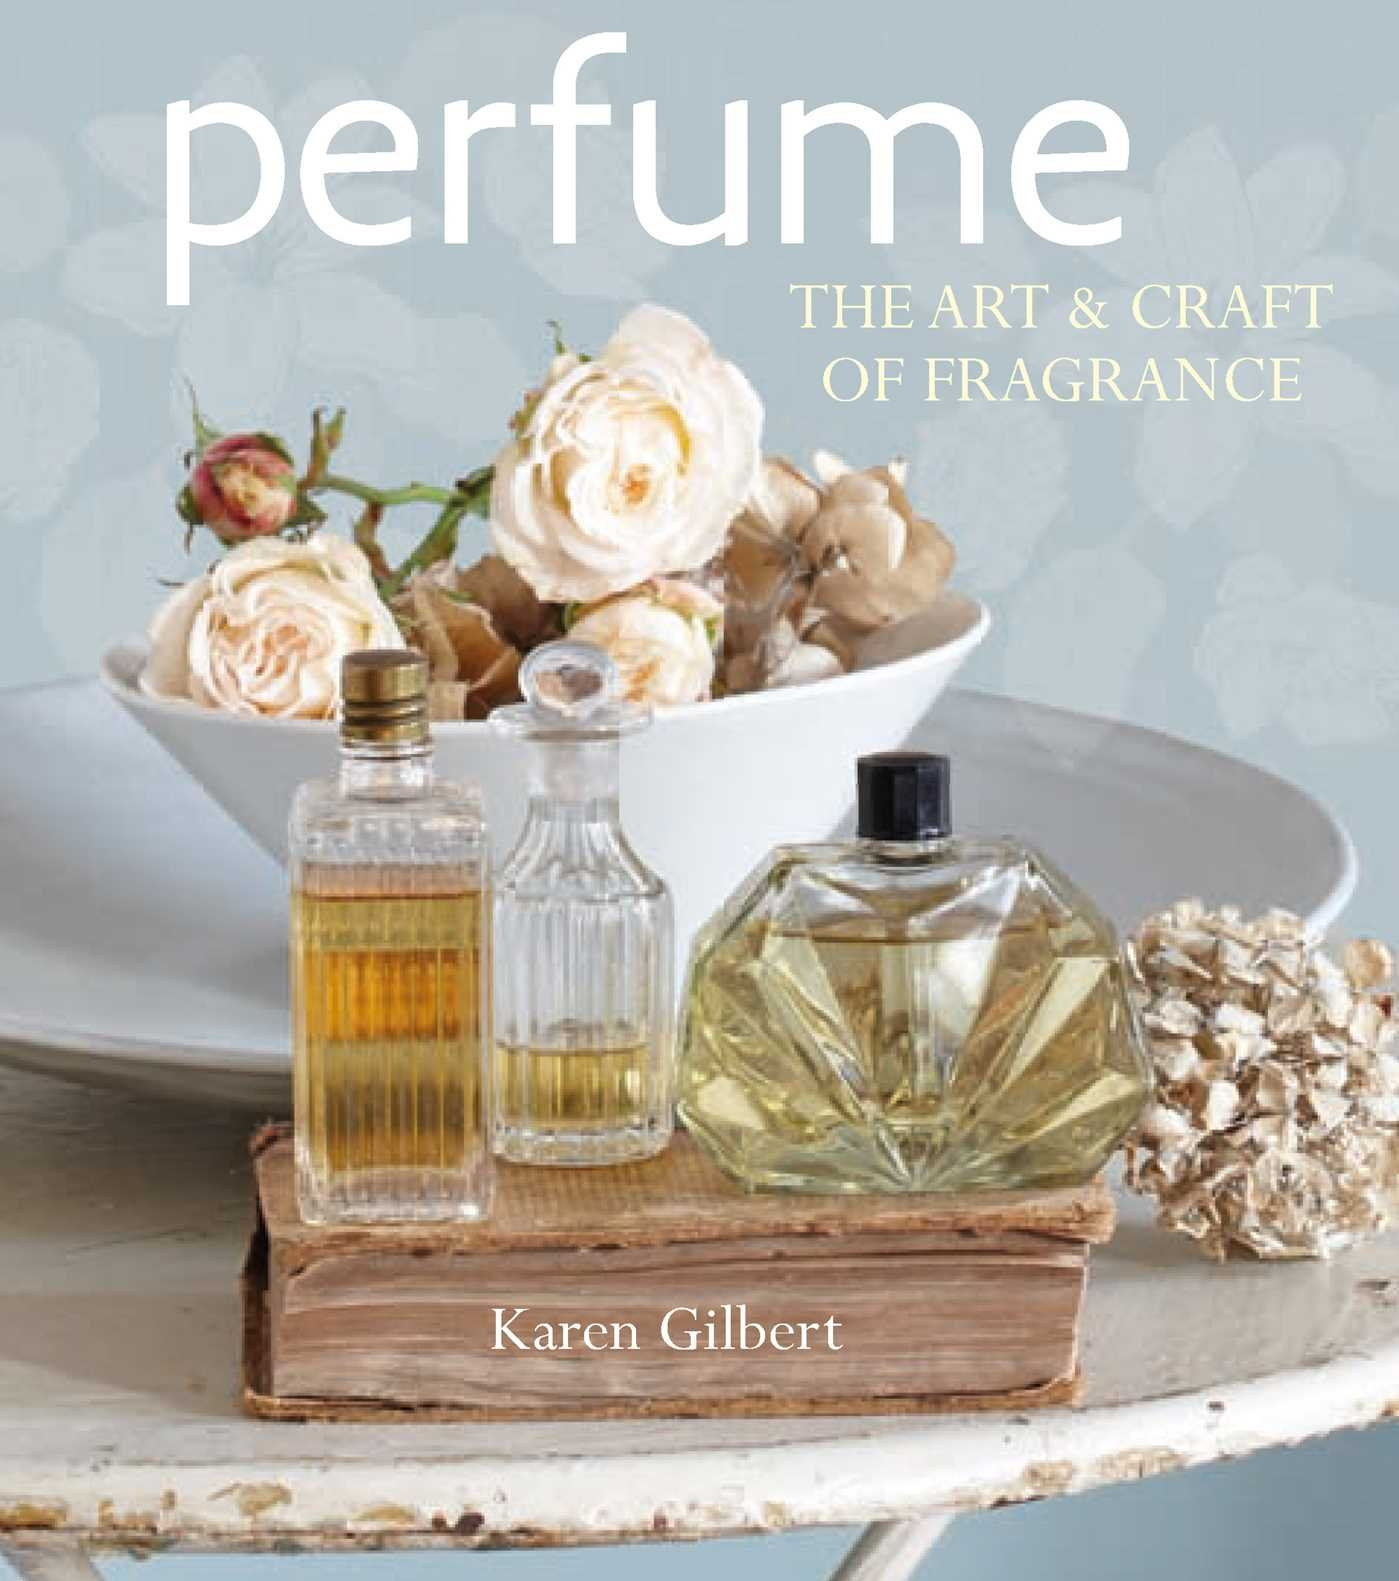 Perfume craft fragrance Karen Gilbert product image